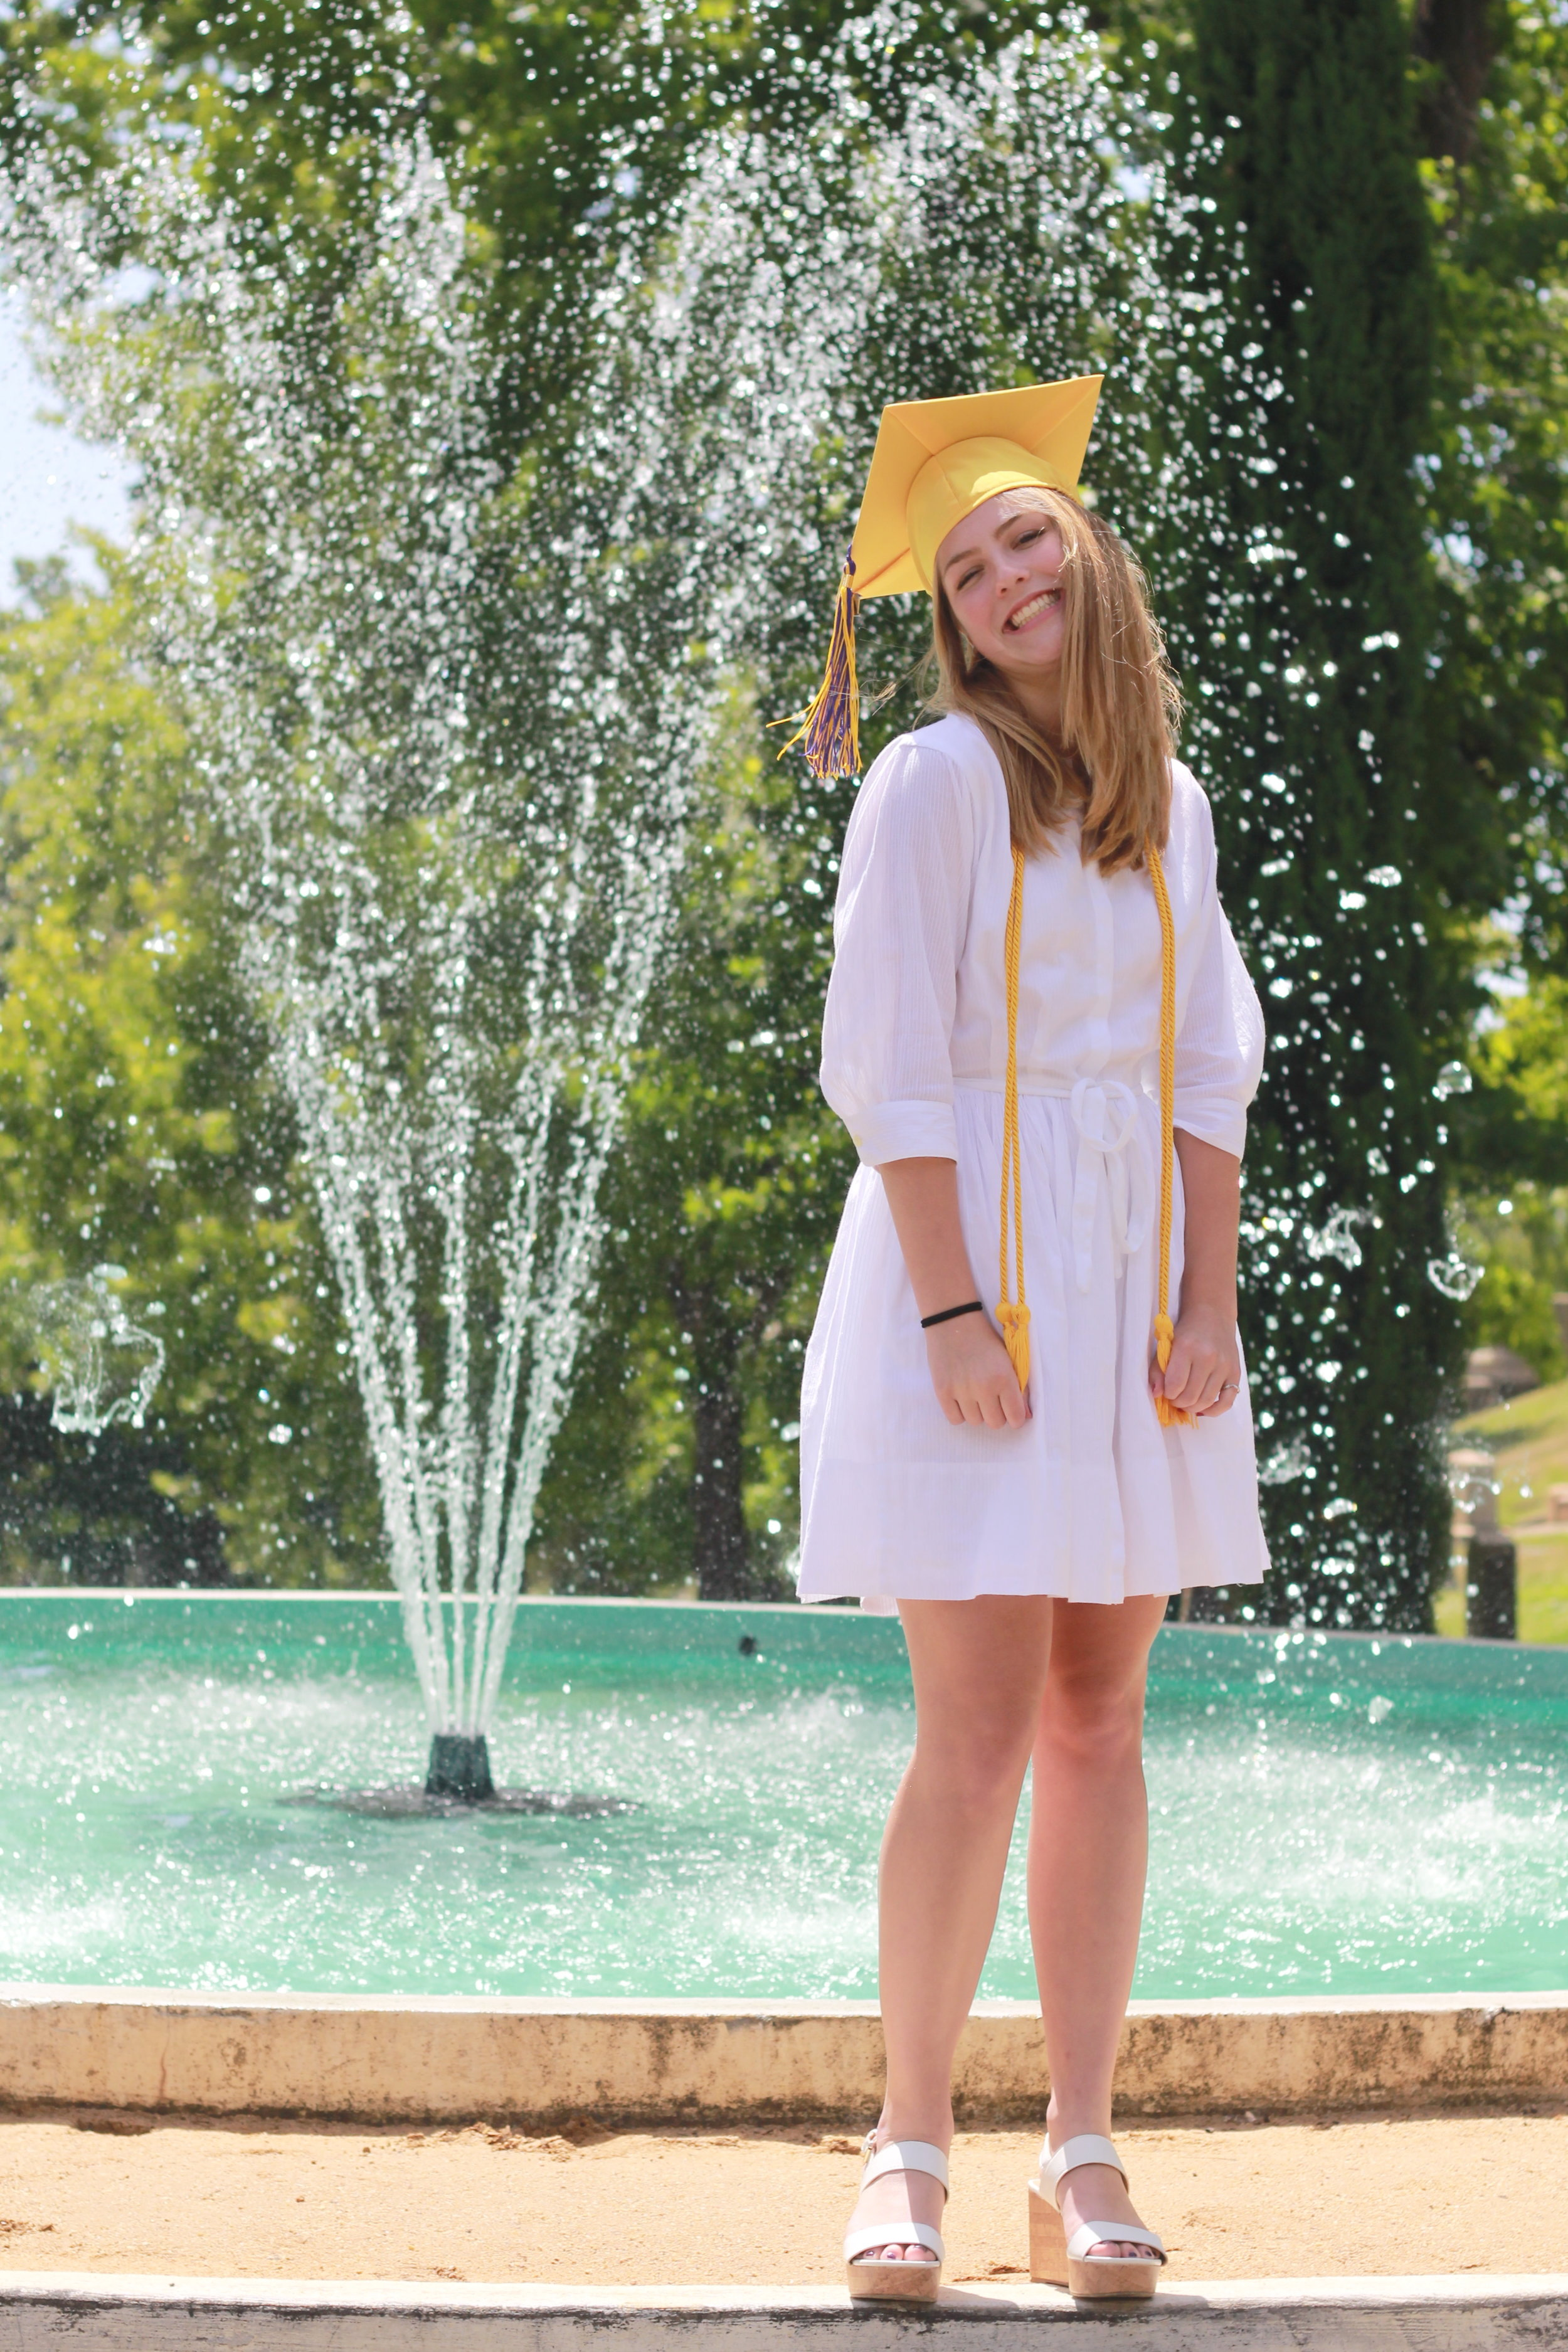 June 2014 - I graduated from Oakland Technical High School, took many of my friends' senior portraits, and got ready to dive into the real world.